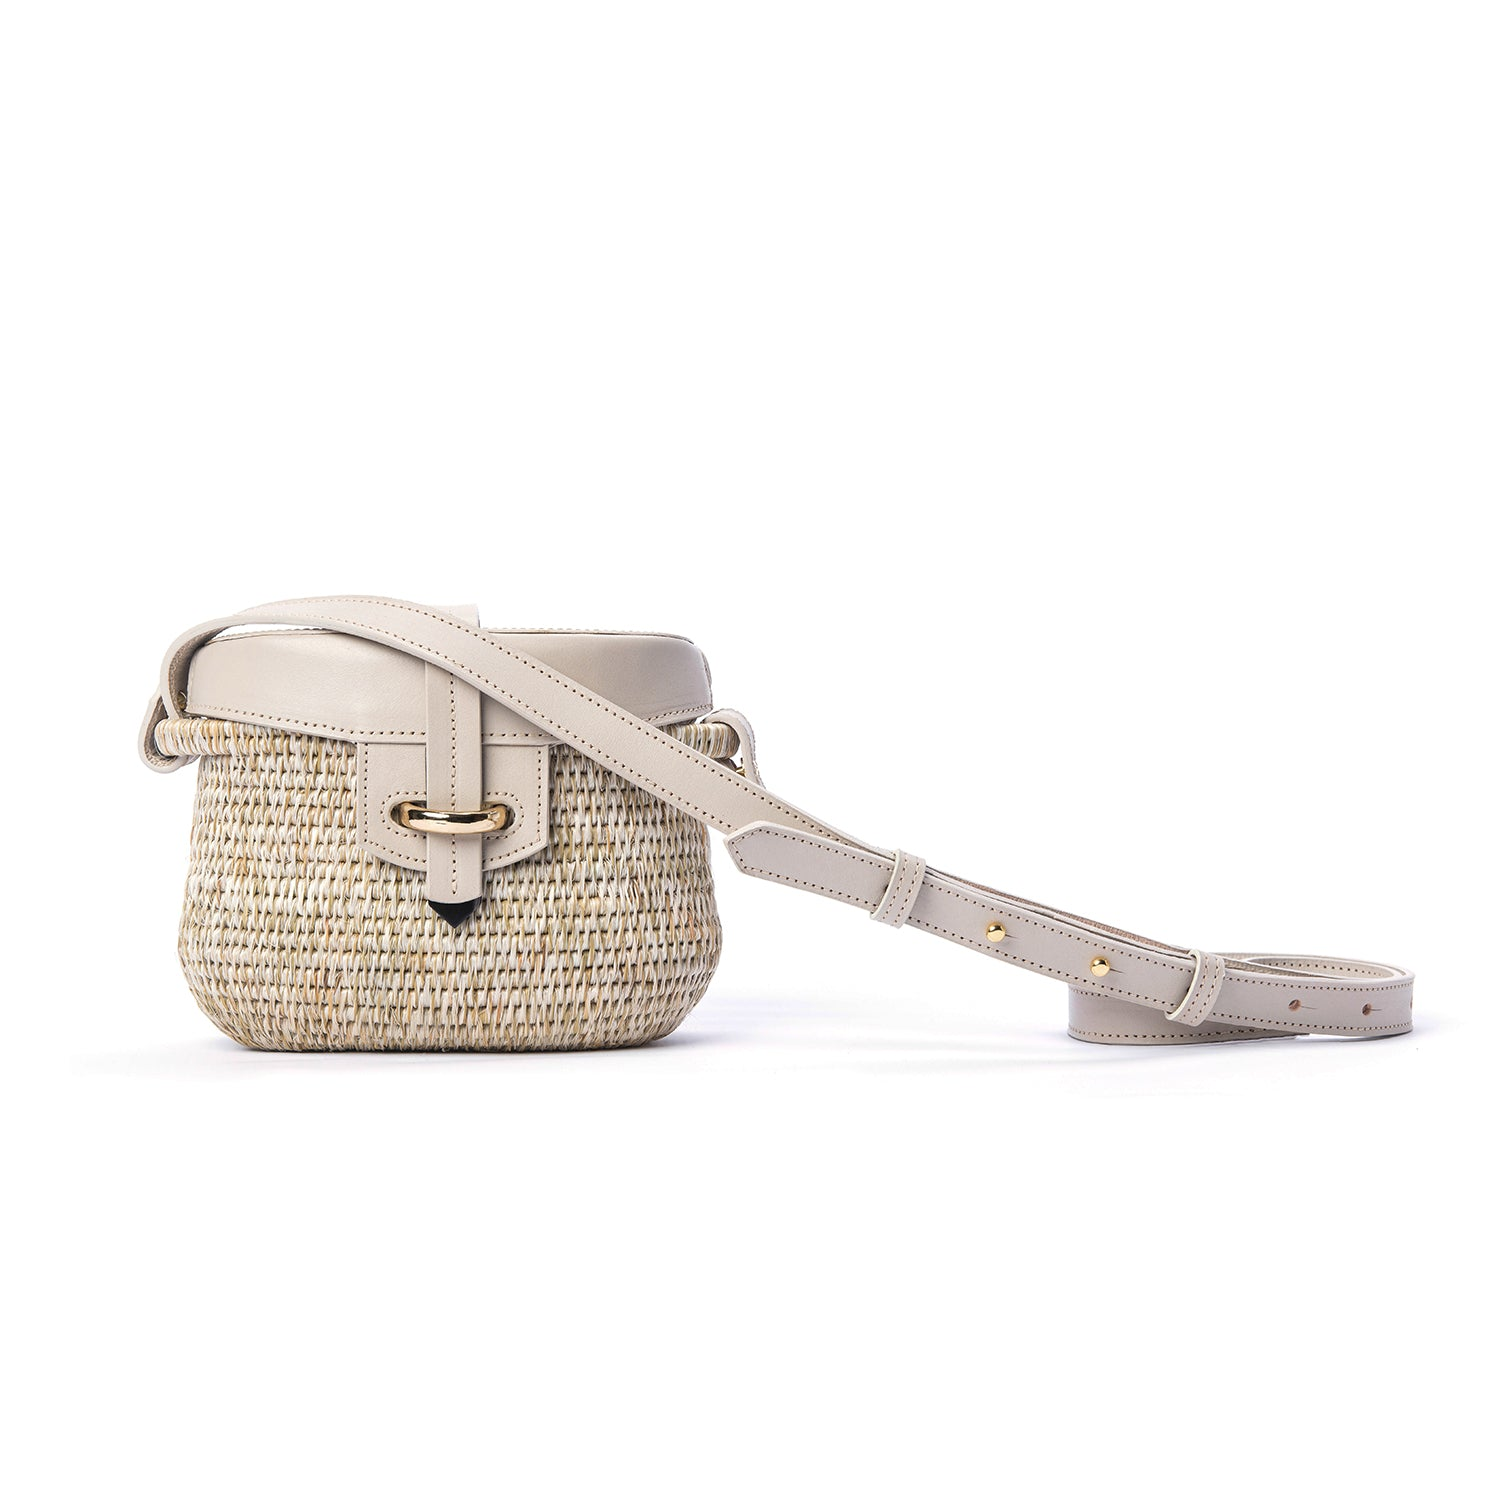 Jabu Smoke/White Leather Trimmed Straw Shoulder Bag